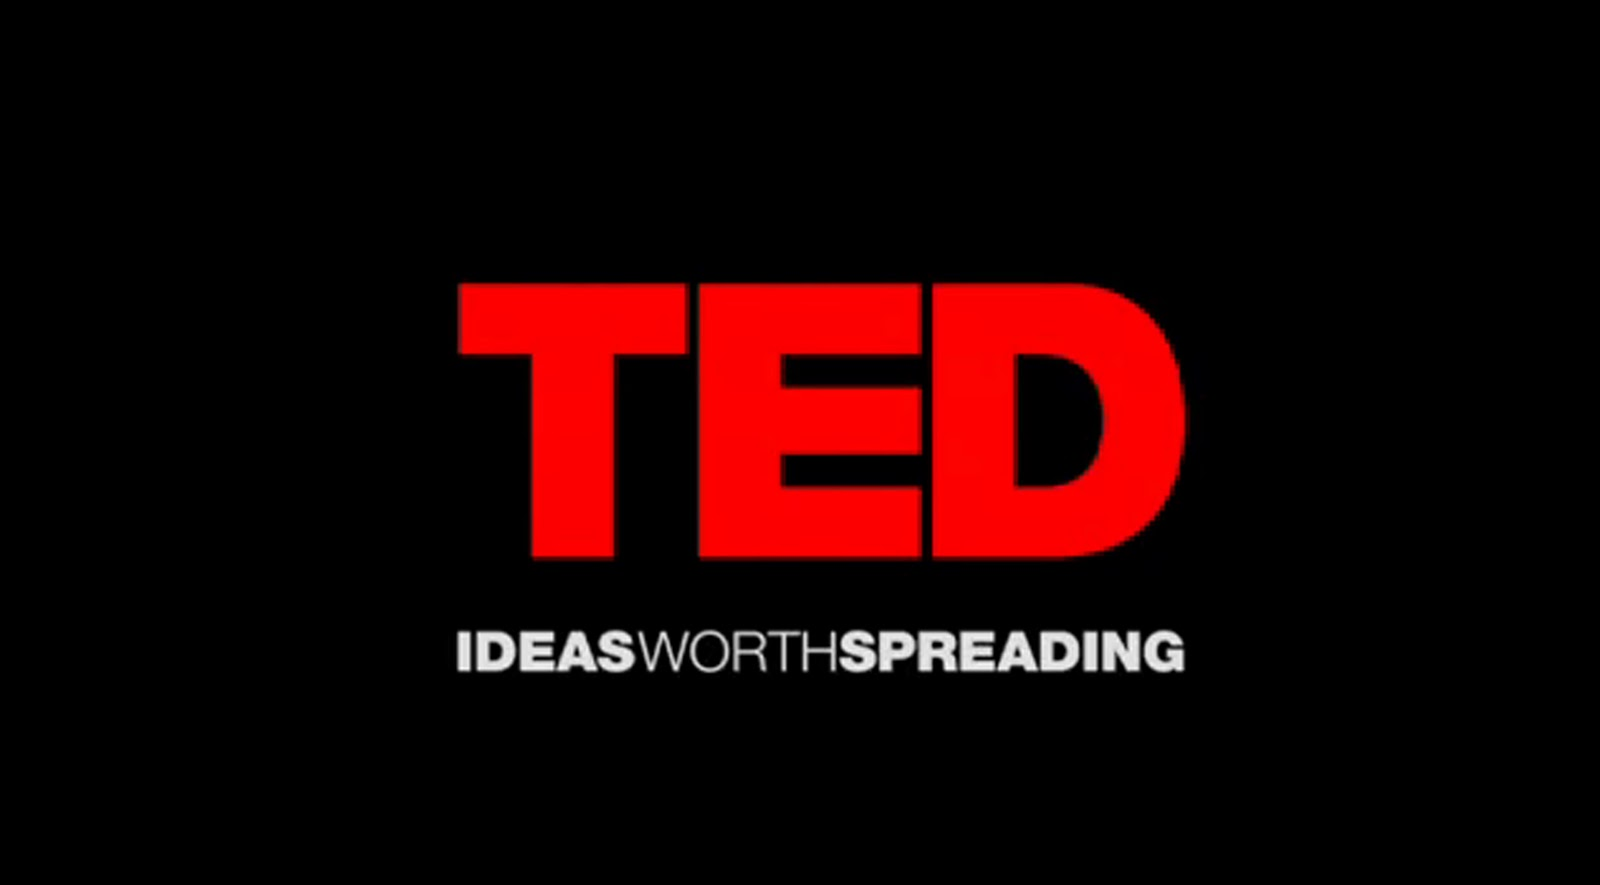 Seven imaginate ink kids speak at ted - Learn more here.